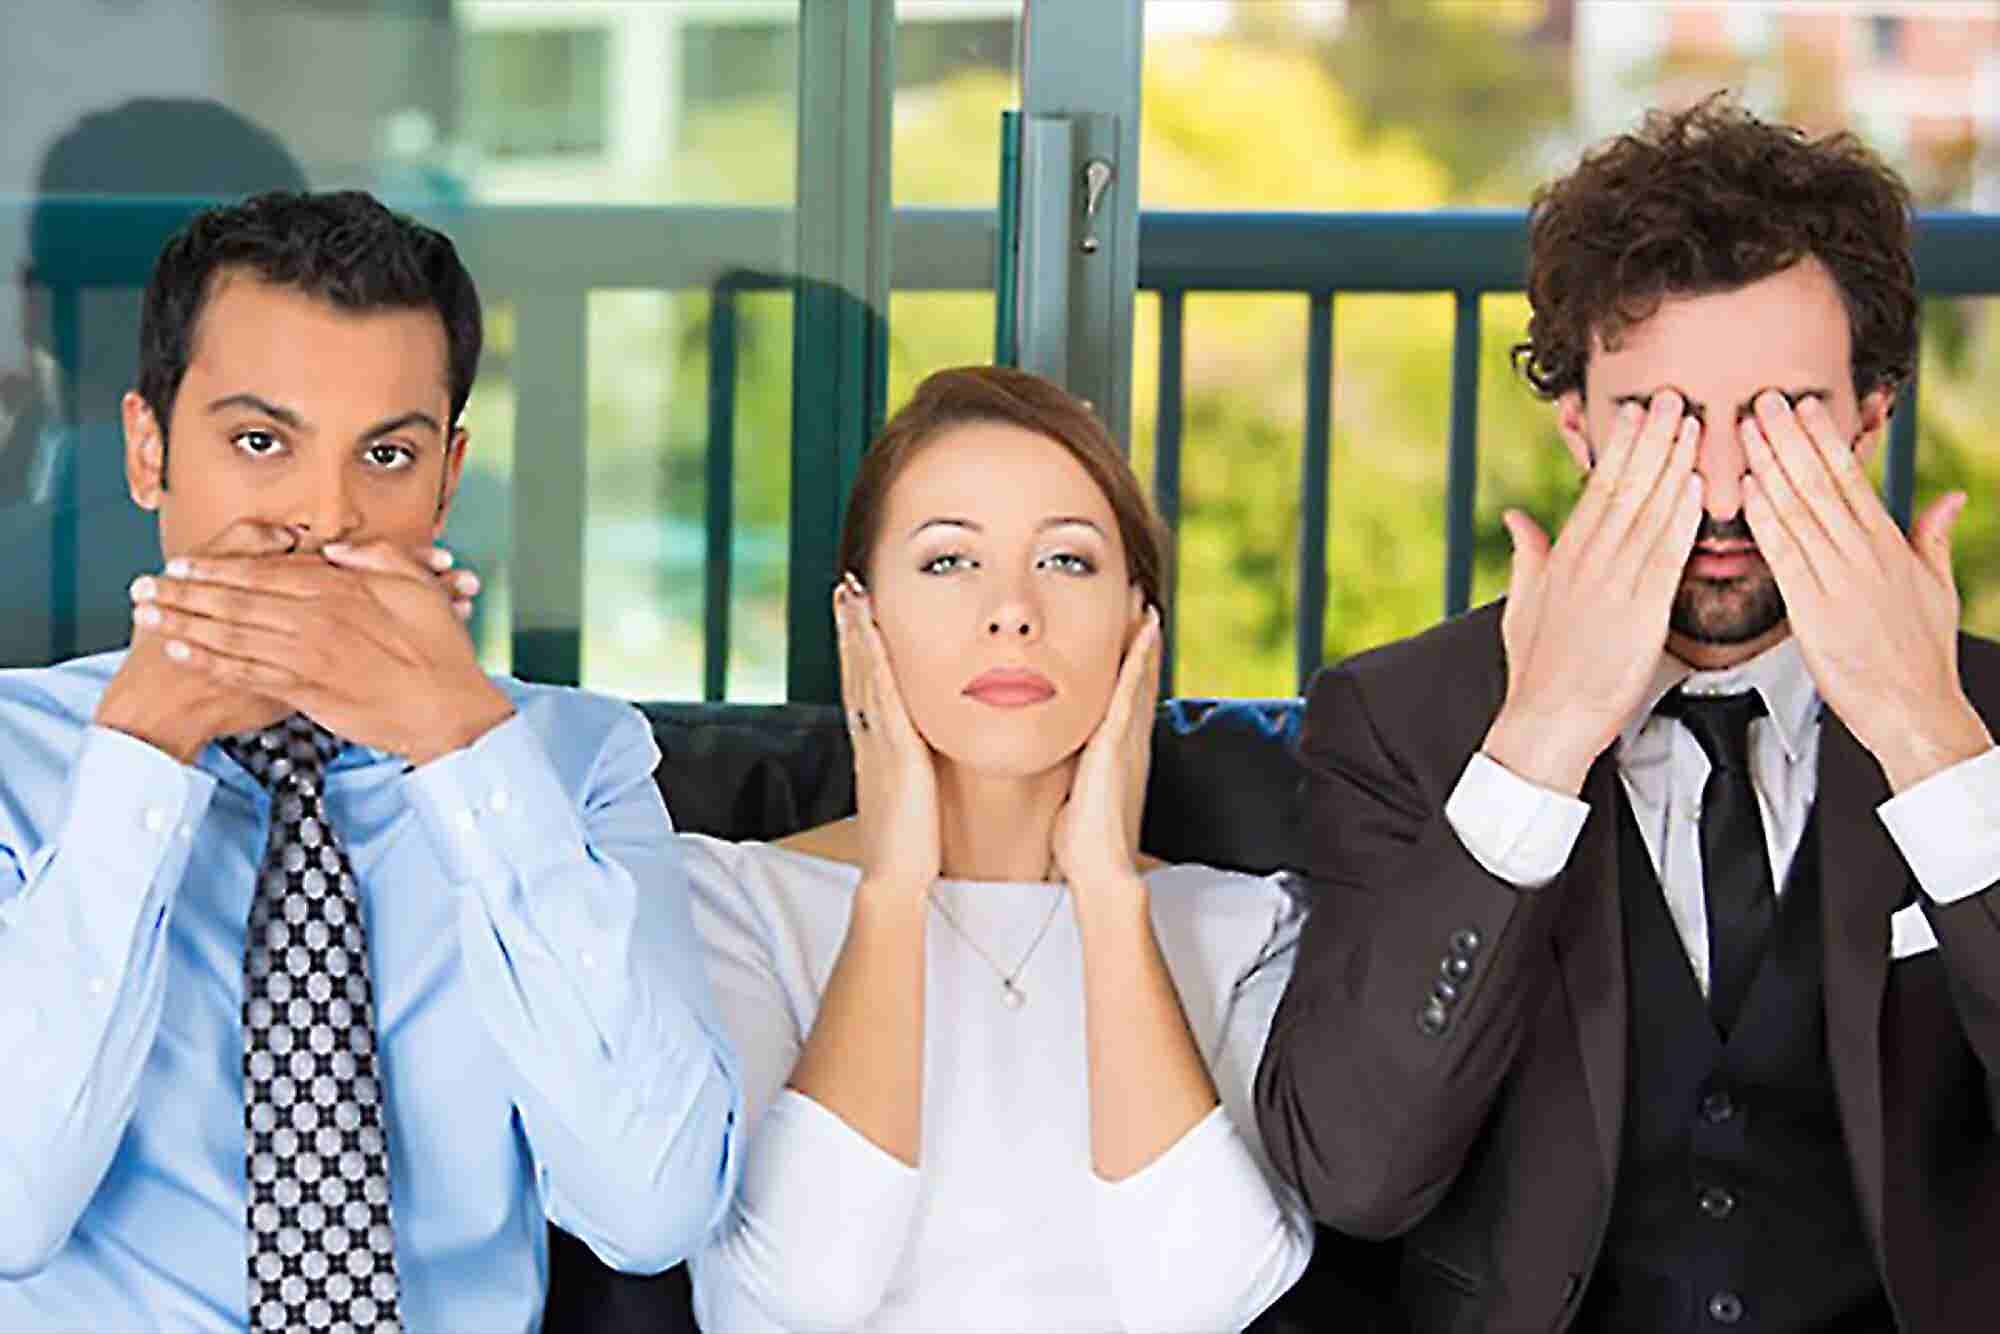 Ignoring Employee Morale Will Cost You. Here's the Solution.